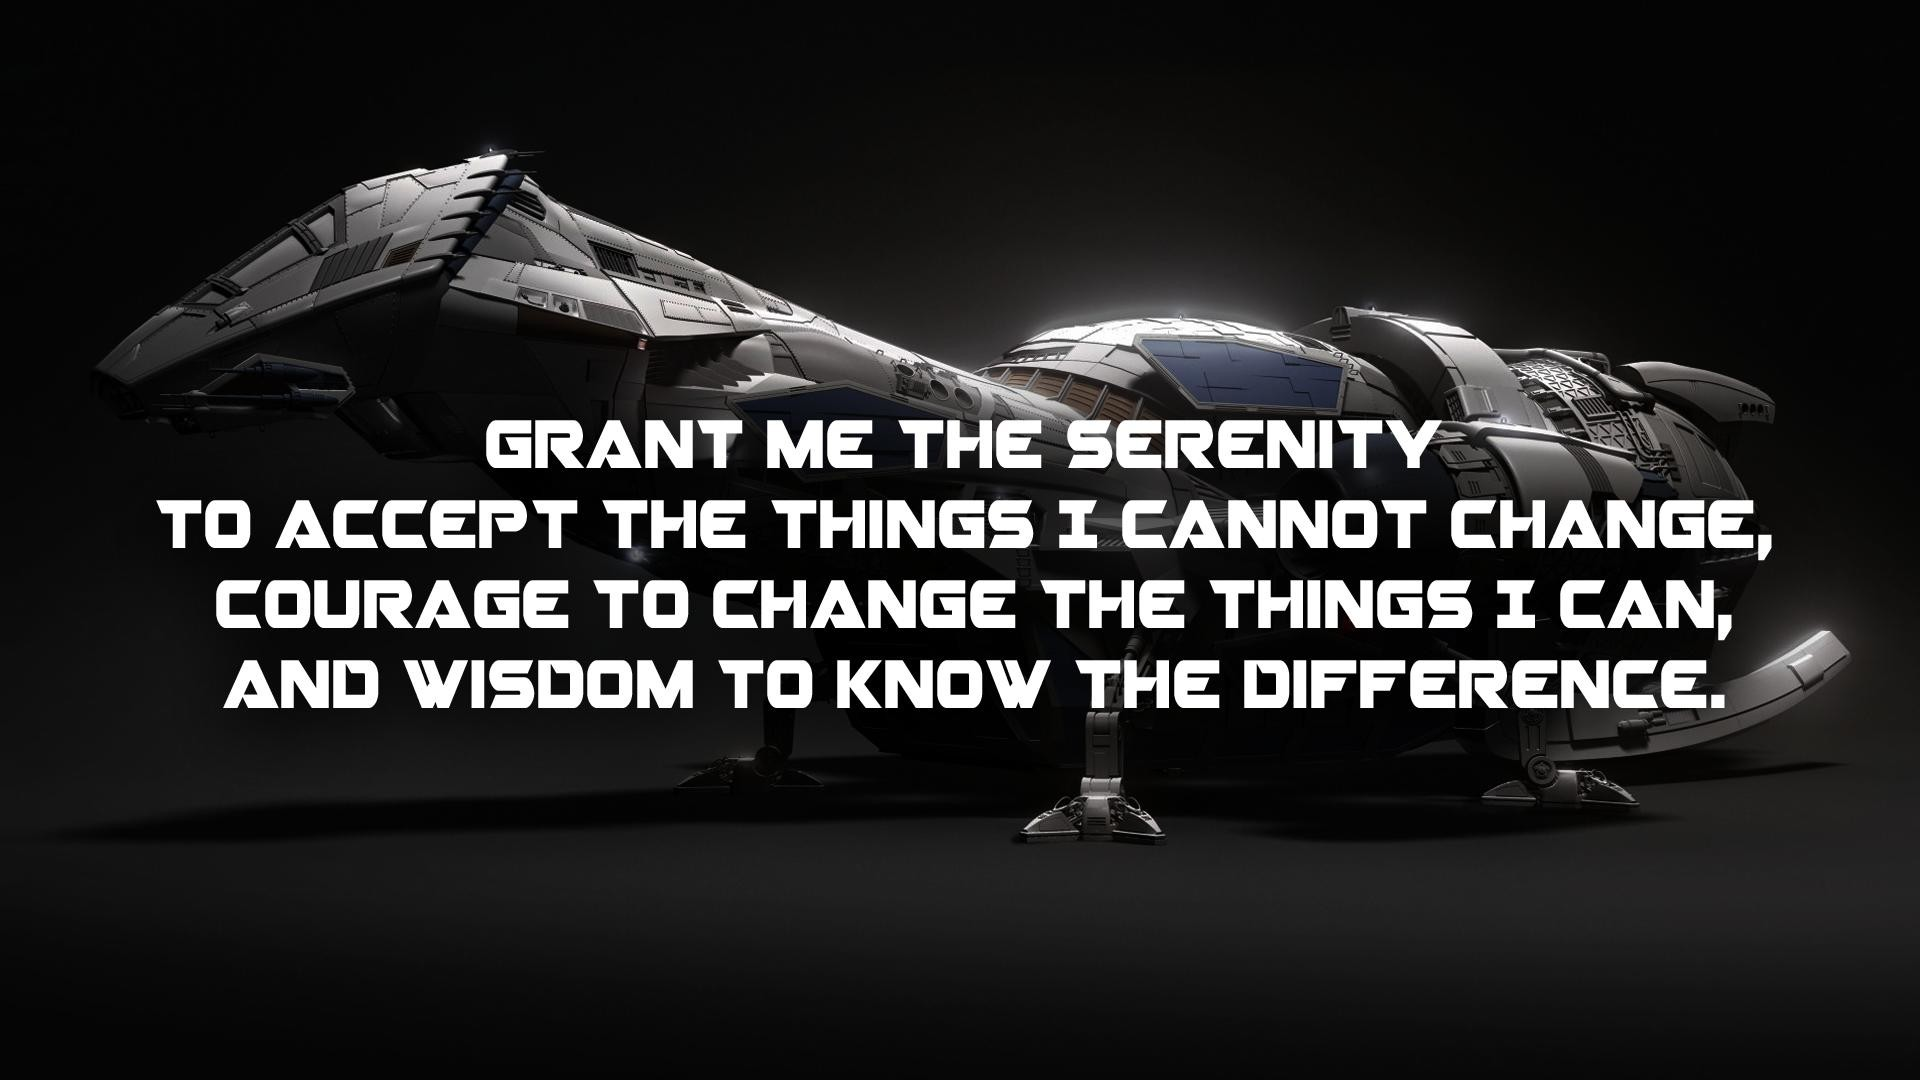 Res: 1920x1080, Wallpaper from Quotes Category | Wallpaper Studio 10 | Tens of thousands HD  and UltraHD wallpapers for Android, Windows and Xbox